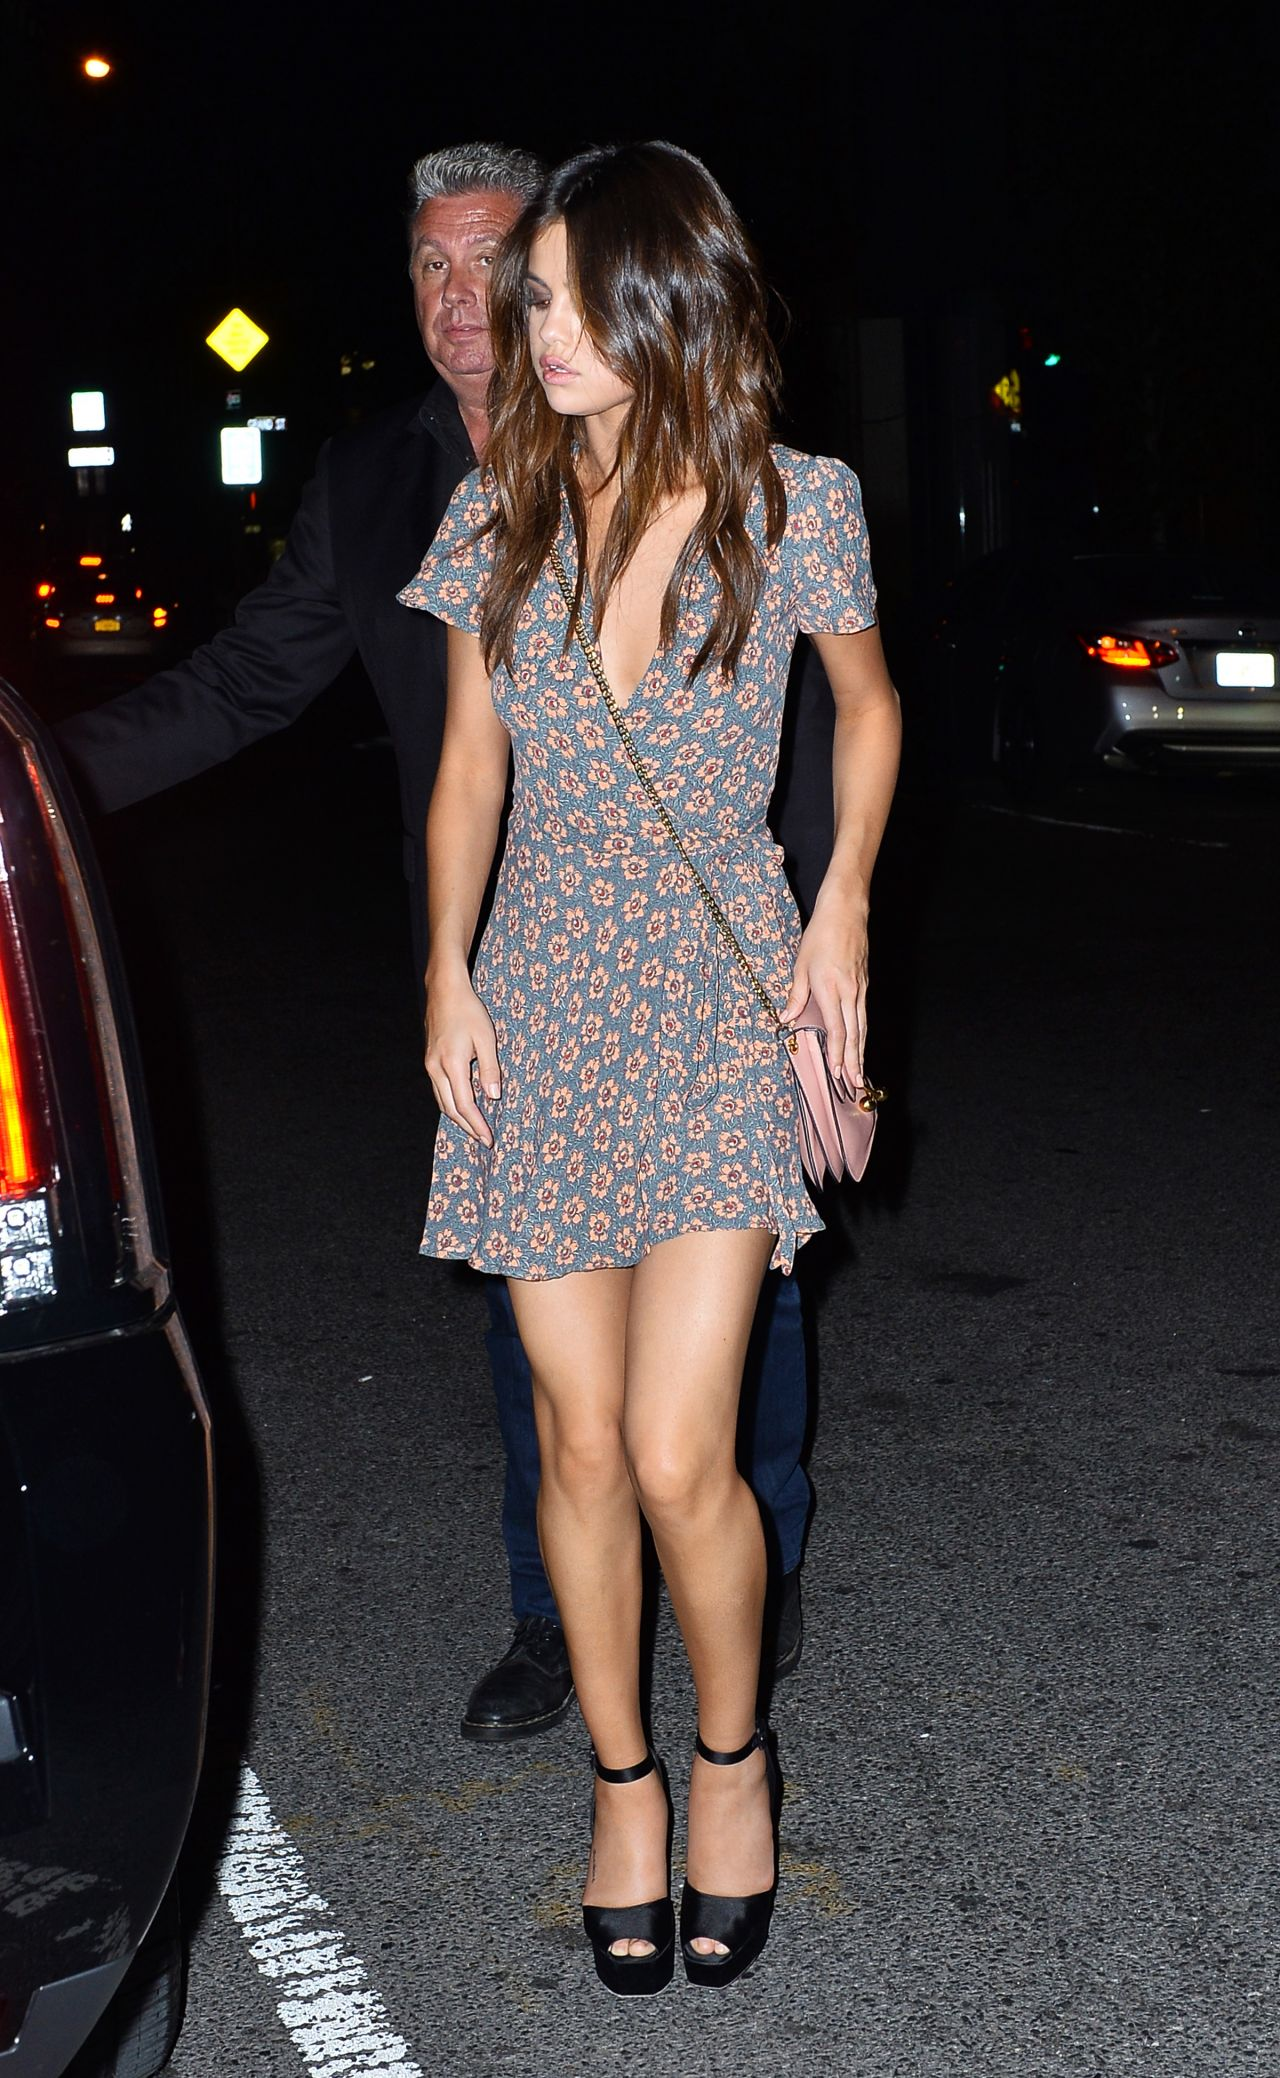 Selena Gomez Night Out Style At The Park Side Restaurant